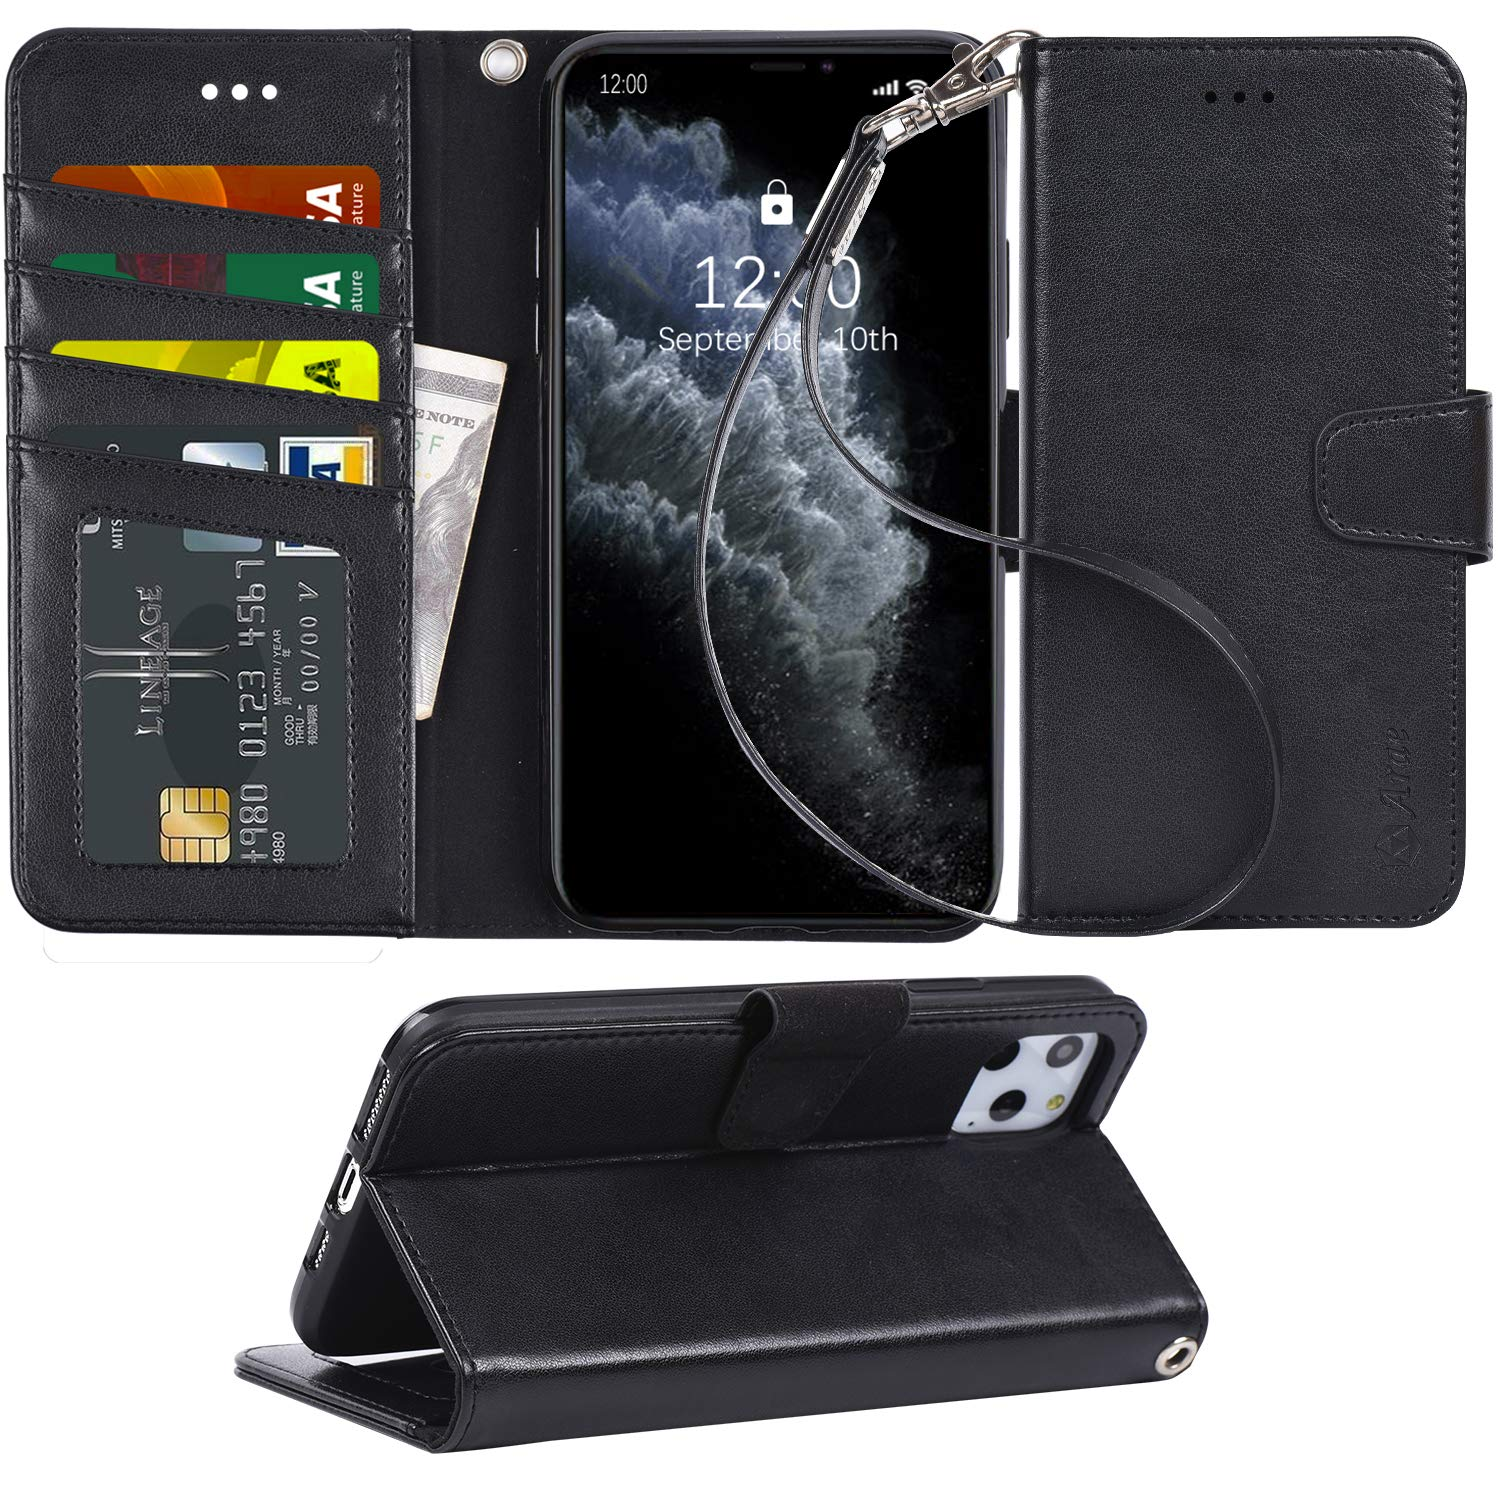 Arae Case for iPhone 11 Pro Max PU Leather Wallet Case Cover [Stand Feature] with Wrist Strap and [4-Slots] ID&Credit Cards Pocket for iPhone 11 Pro Max 6.5 inch 2019 Released - Black